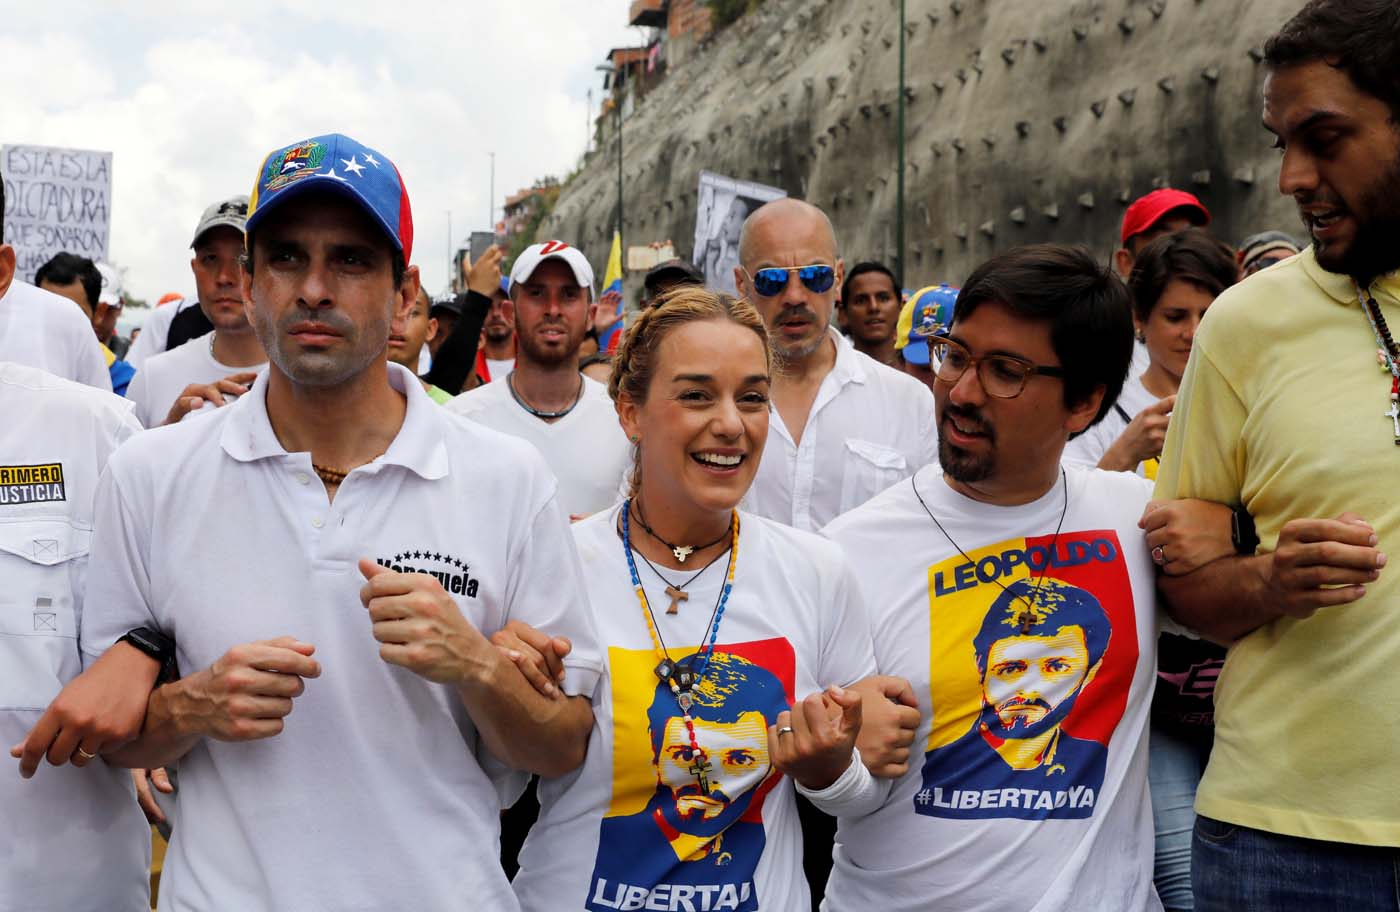 (L to R), Venezuelan opposition leader and Governor of Miranda state Henrique Capriles, Lilian Tintori, wife of jailed opposition leader Leopoldo Lopez and Congressman Freddy Guevara take part in a rally to honour victims of violence during a protest against Venezuela's President Nicolas Maduro's government in Caracas, Venezuela, April 22, 2017. REUTERS/Carlos Garcia Rawlins